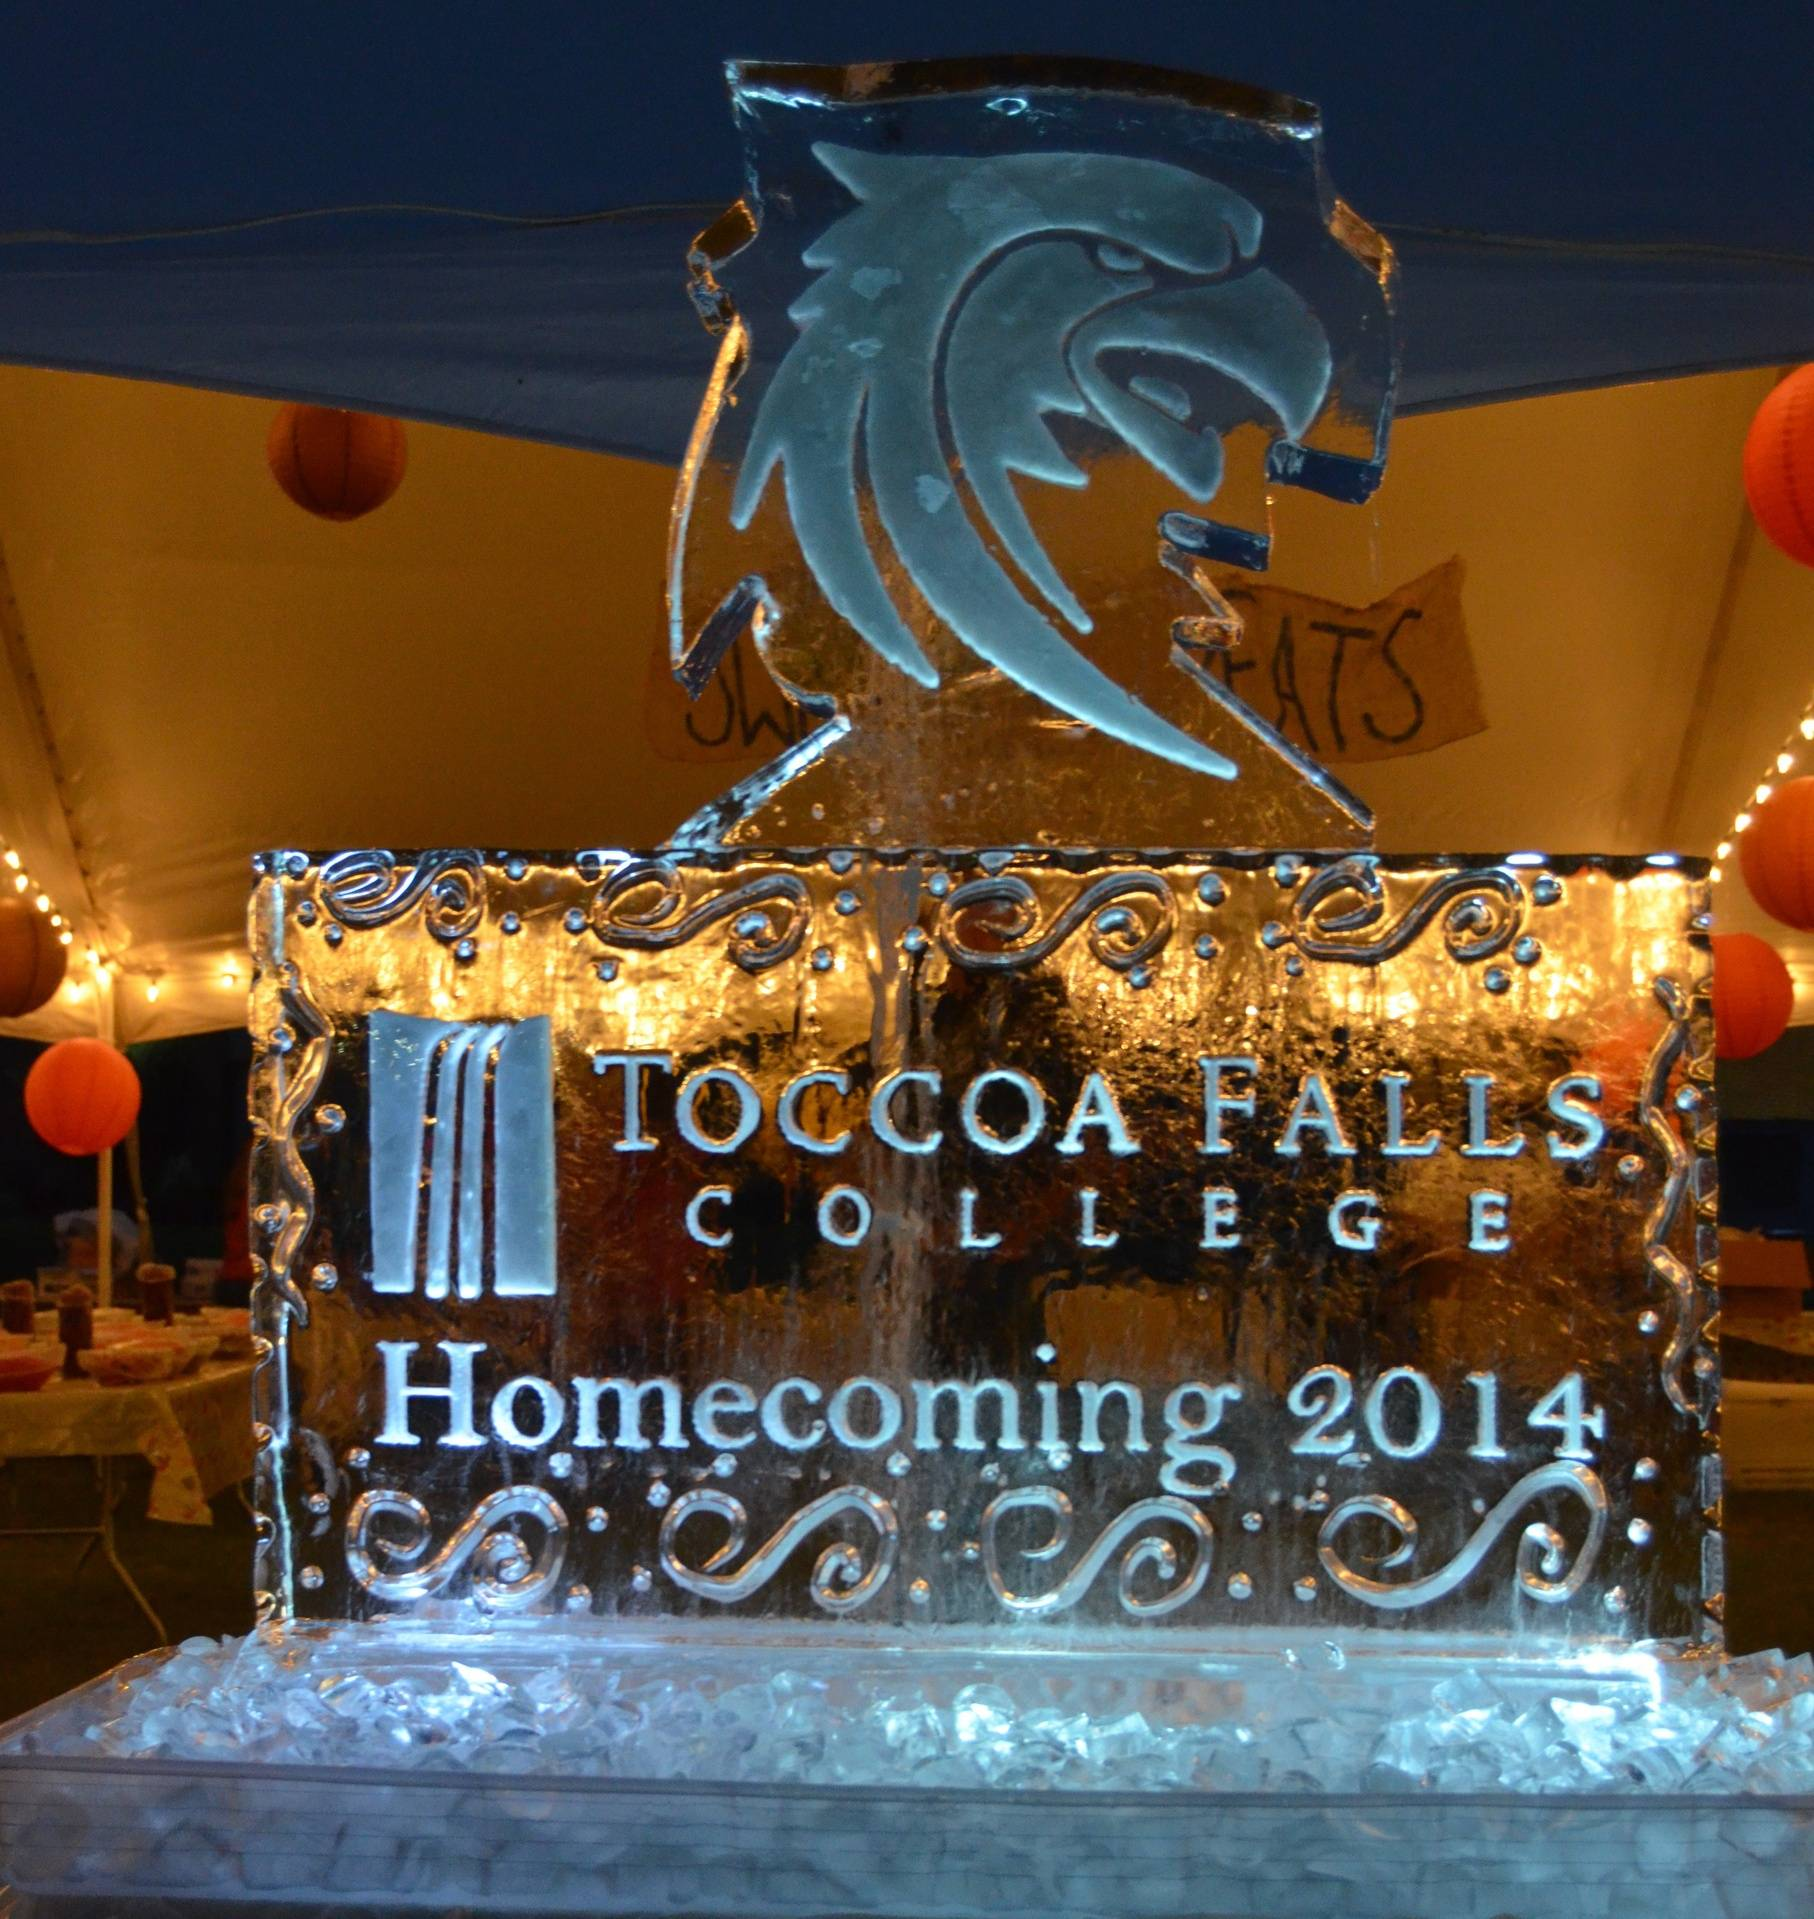 Home Coming for Toccoa Falls College